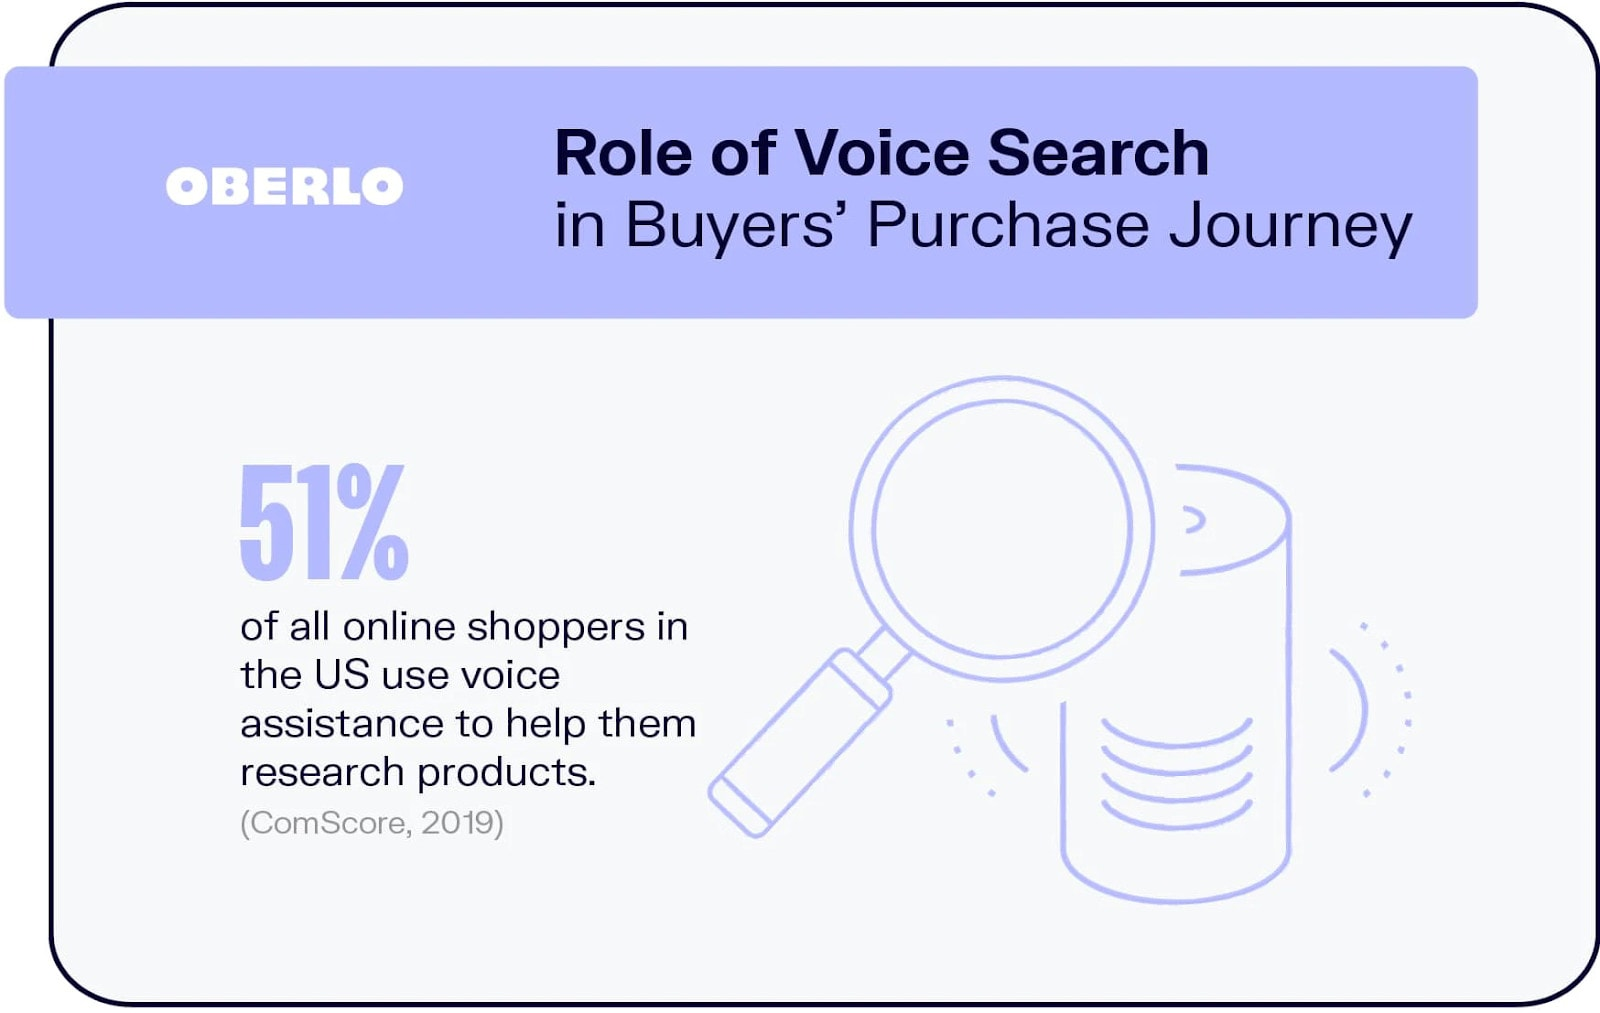 More than half of all online shoppers use voice search to assist in the buyer's journey.